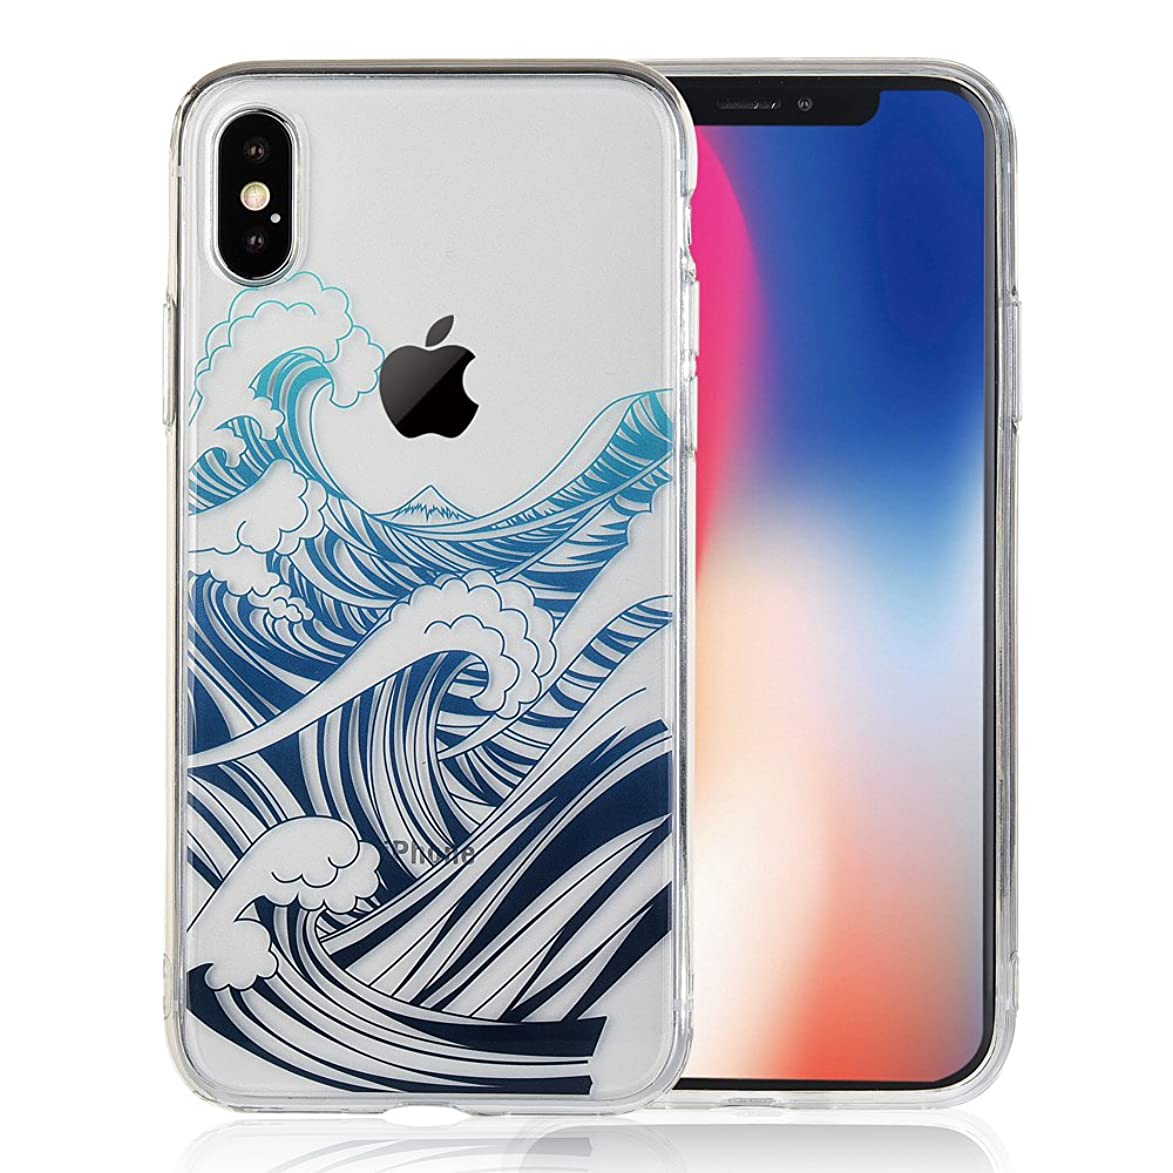 COSANO iPhone X Case Premium Quality Blue sea Wave Nature Beach Pattern [Hard PC Back + Soft TPU Bumper] [Ultra Thin] Crystal Clear with Design for Apple New iPhone 10 5.8